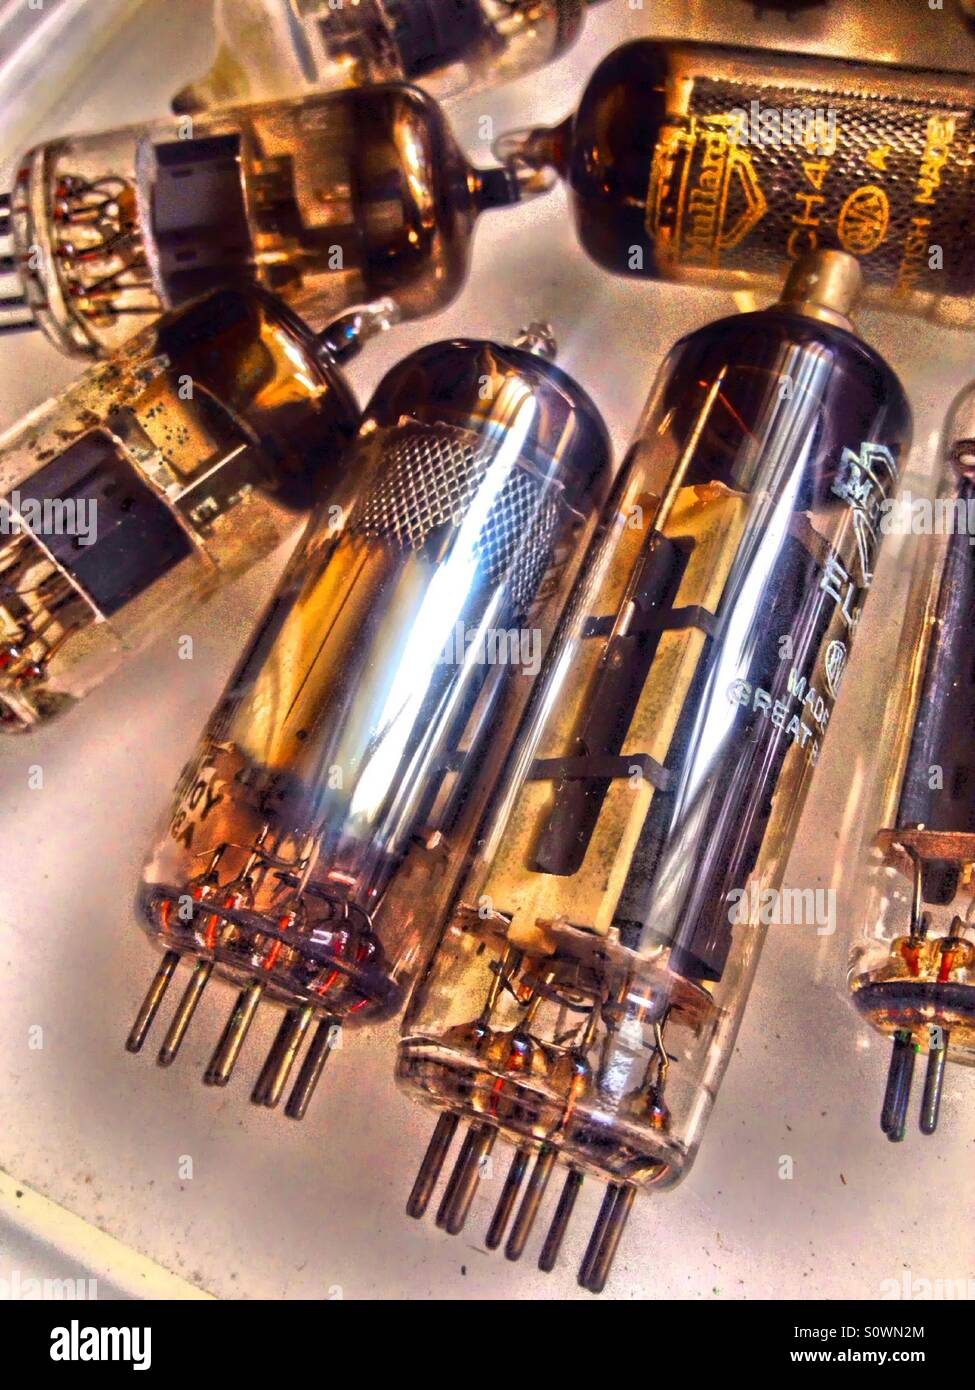 Vintage radio and television valves Stock Photo: 310351964 - Alamy